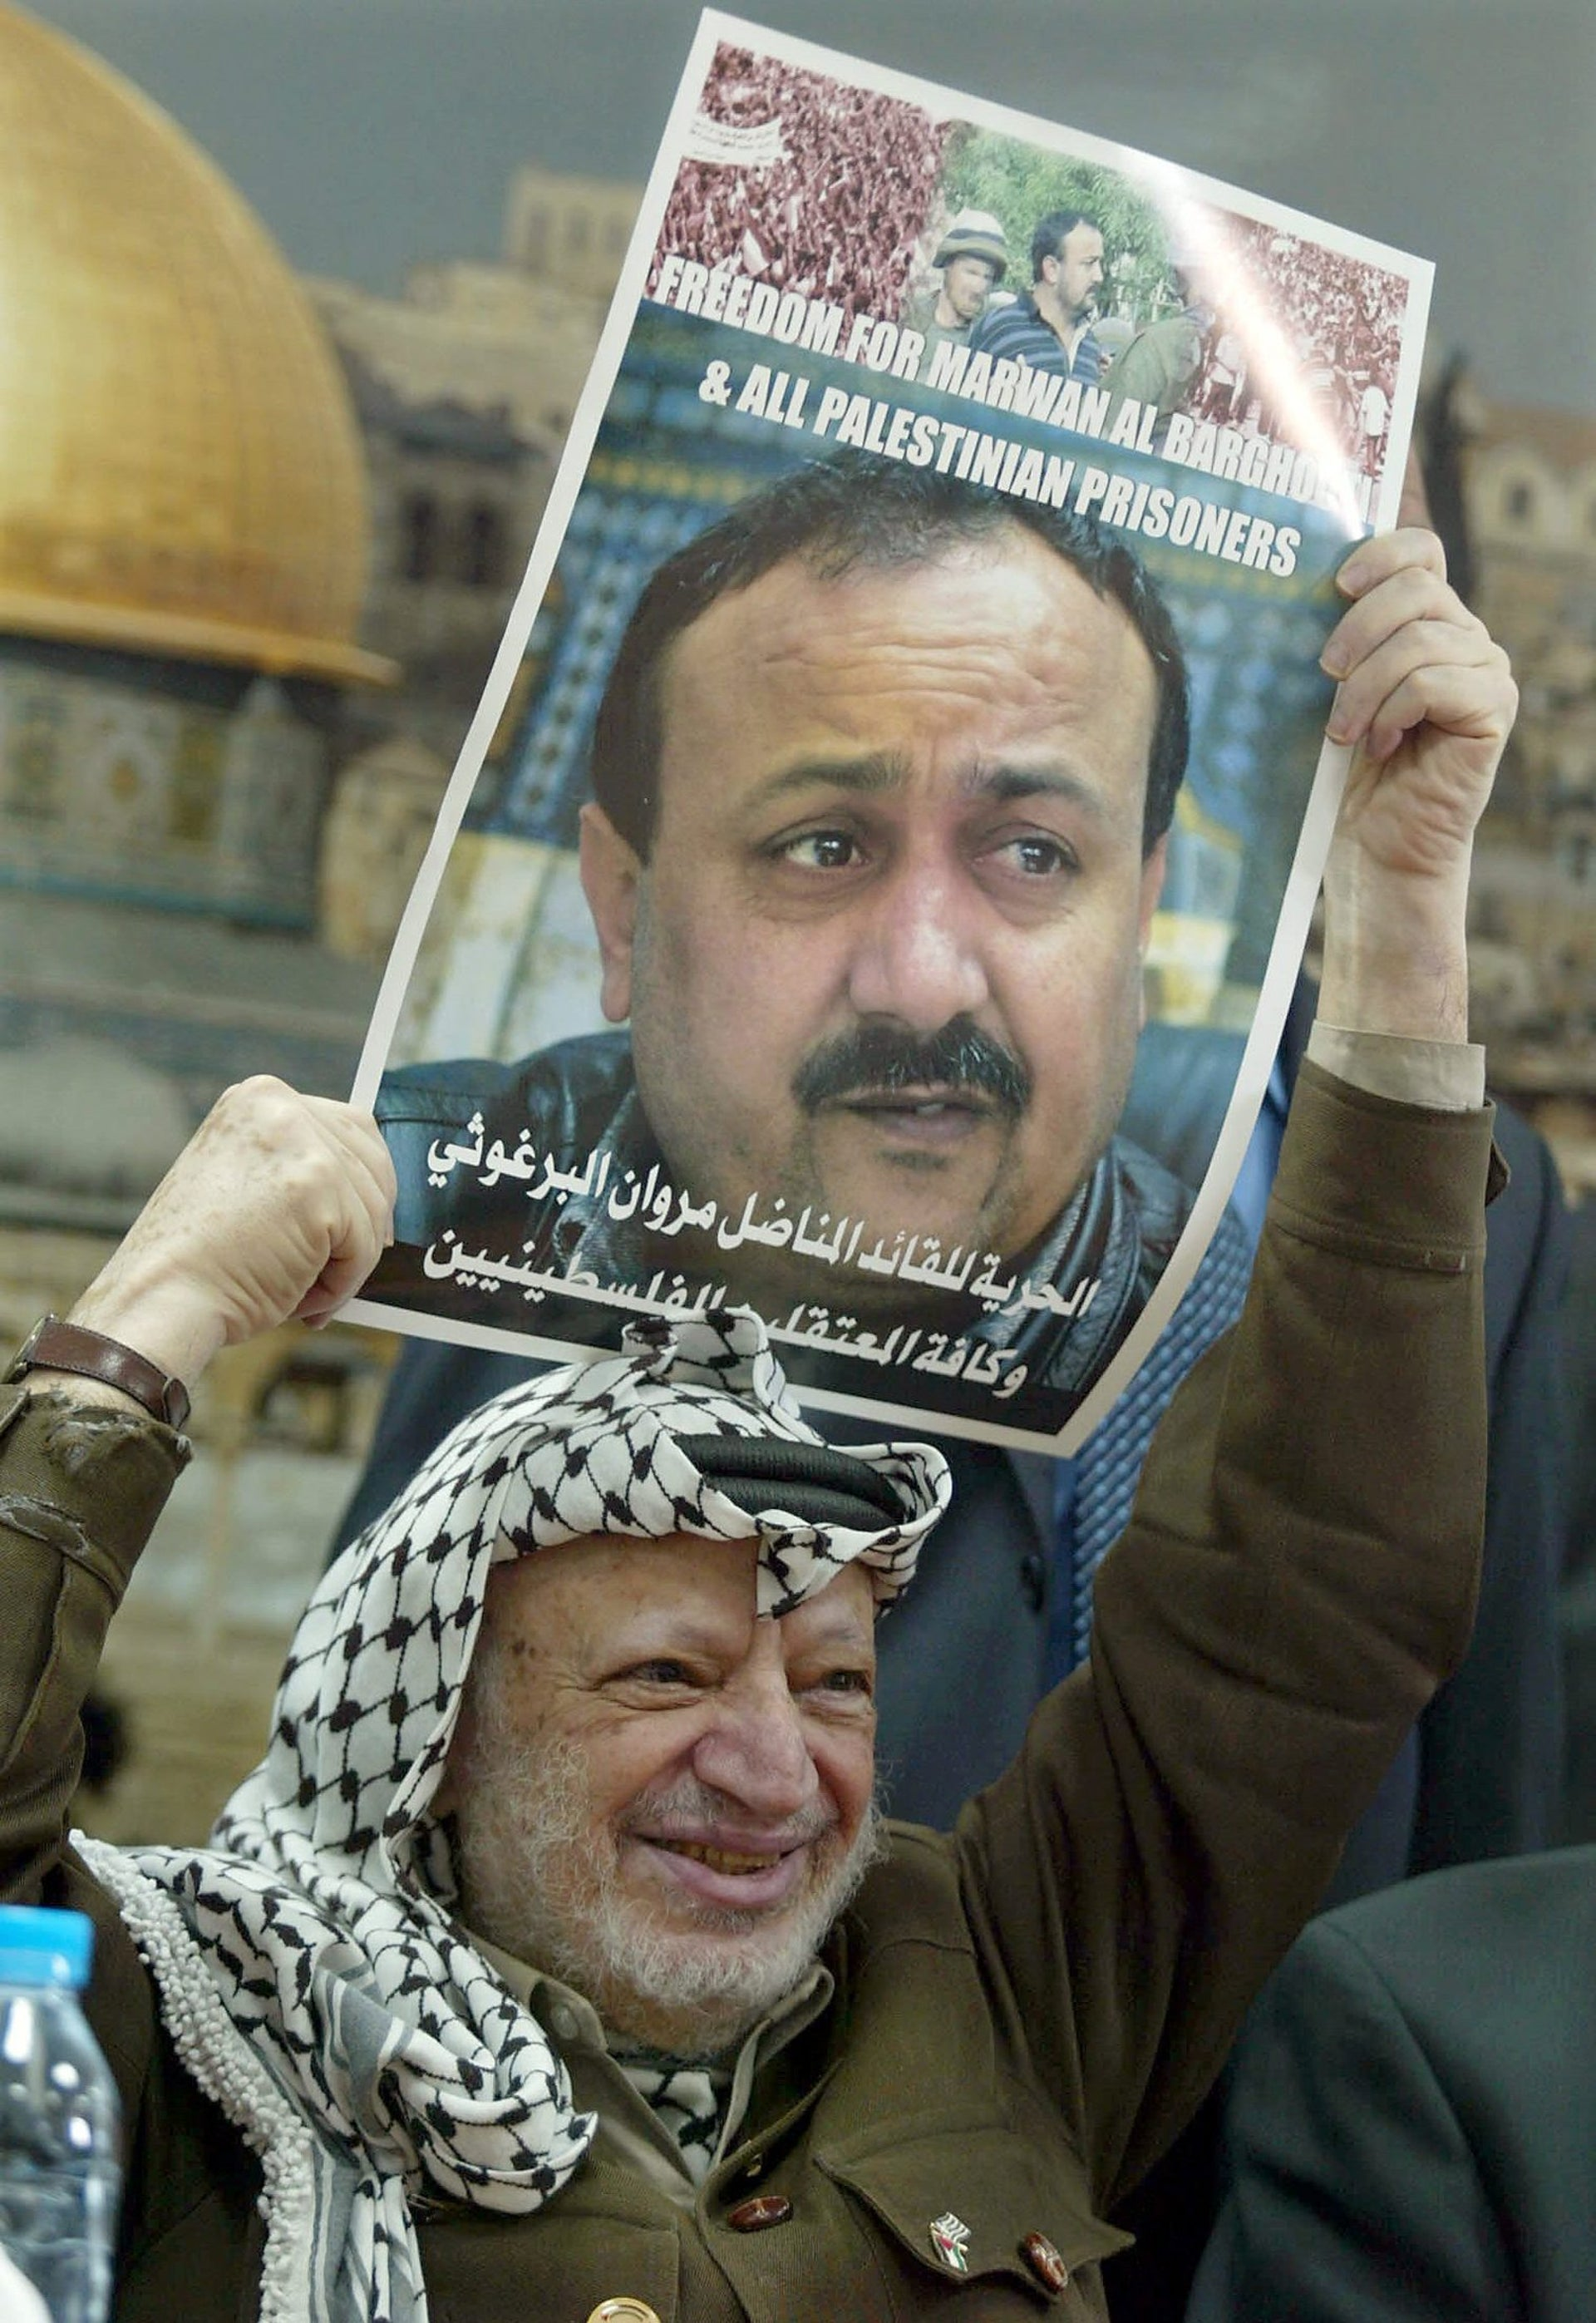 Palestinian leader Yasser Arafat holds a poster of jailed leader of the Fatah movement in the West Bank Marwan Barghouti during a ceremony in his office in of Ramallah, February 12, 2004.